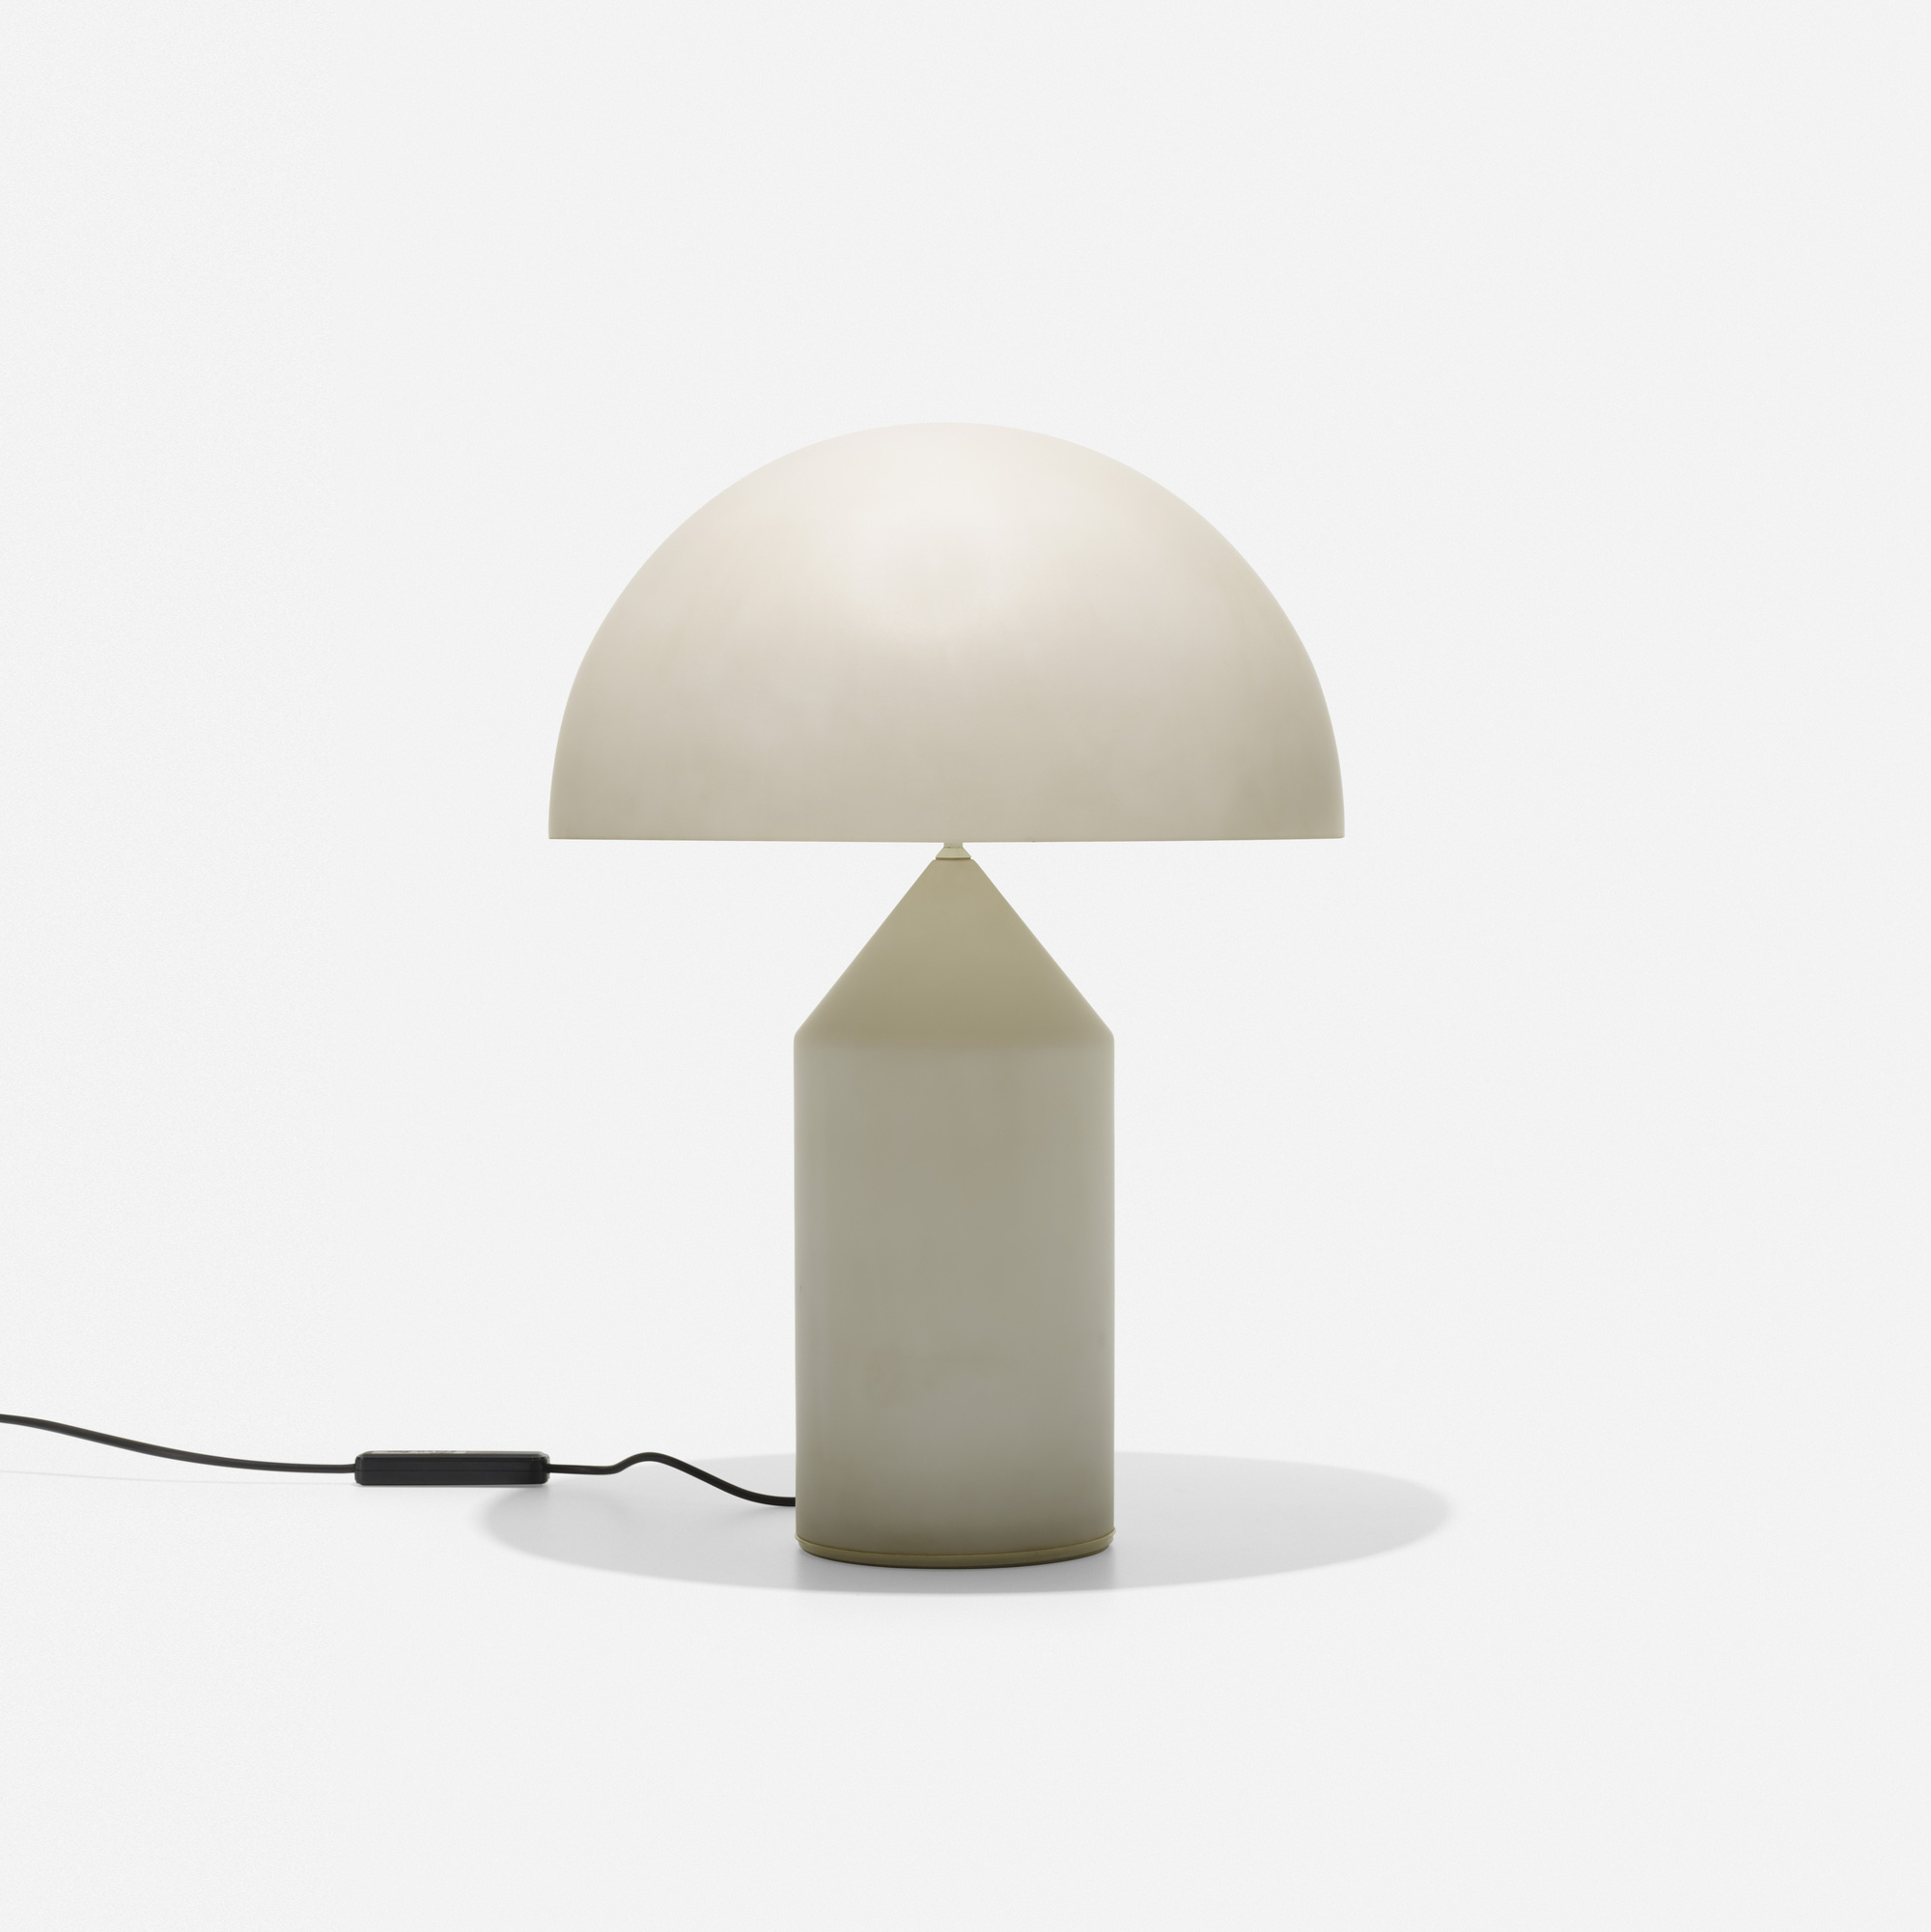 240: Vico Magistretti / Atollo table lamp (1 of 1)